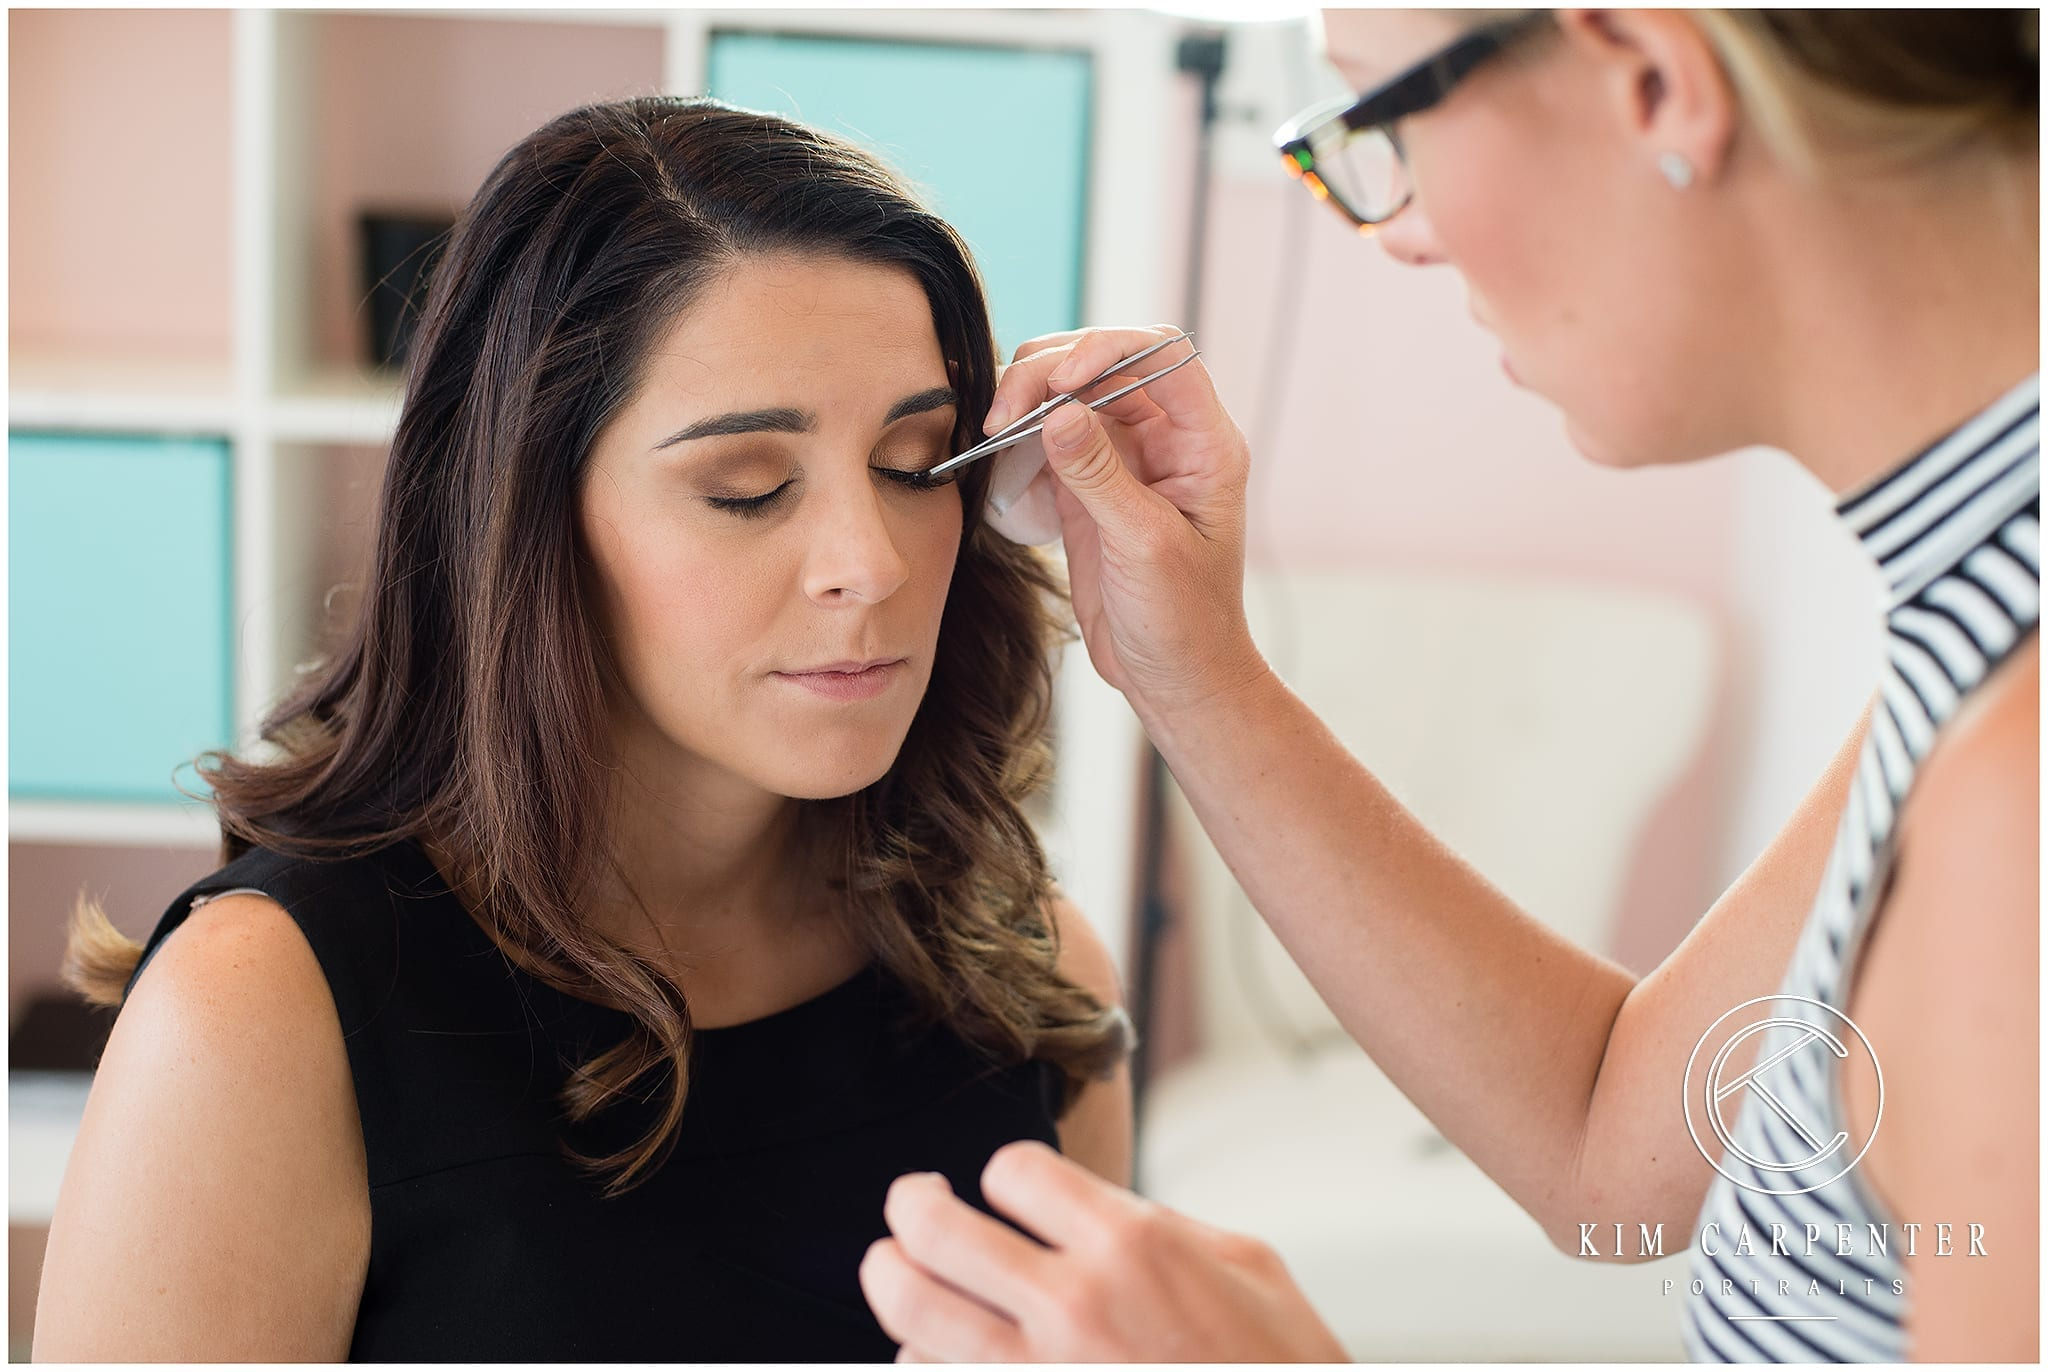 Woman getting her eyelashes professionally done for her professional headshots. Lakeland Photographer, professional headshots